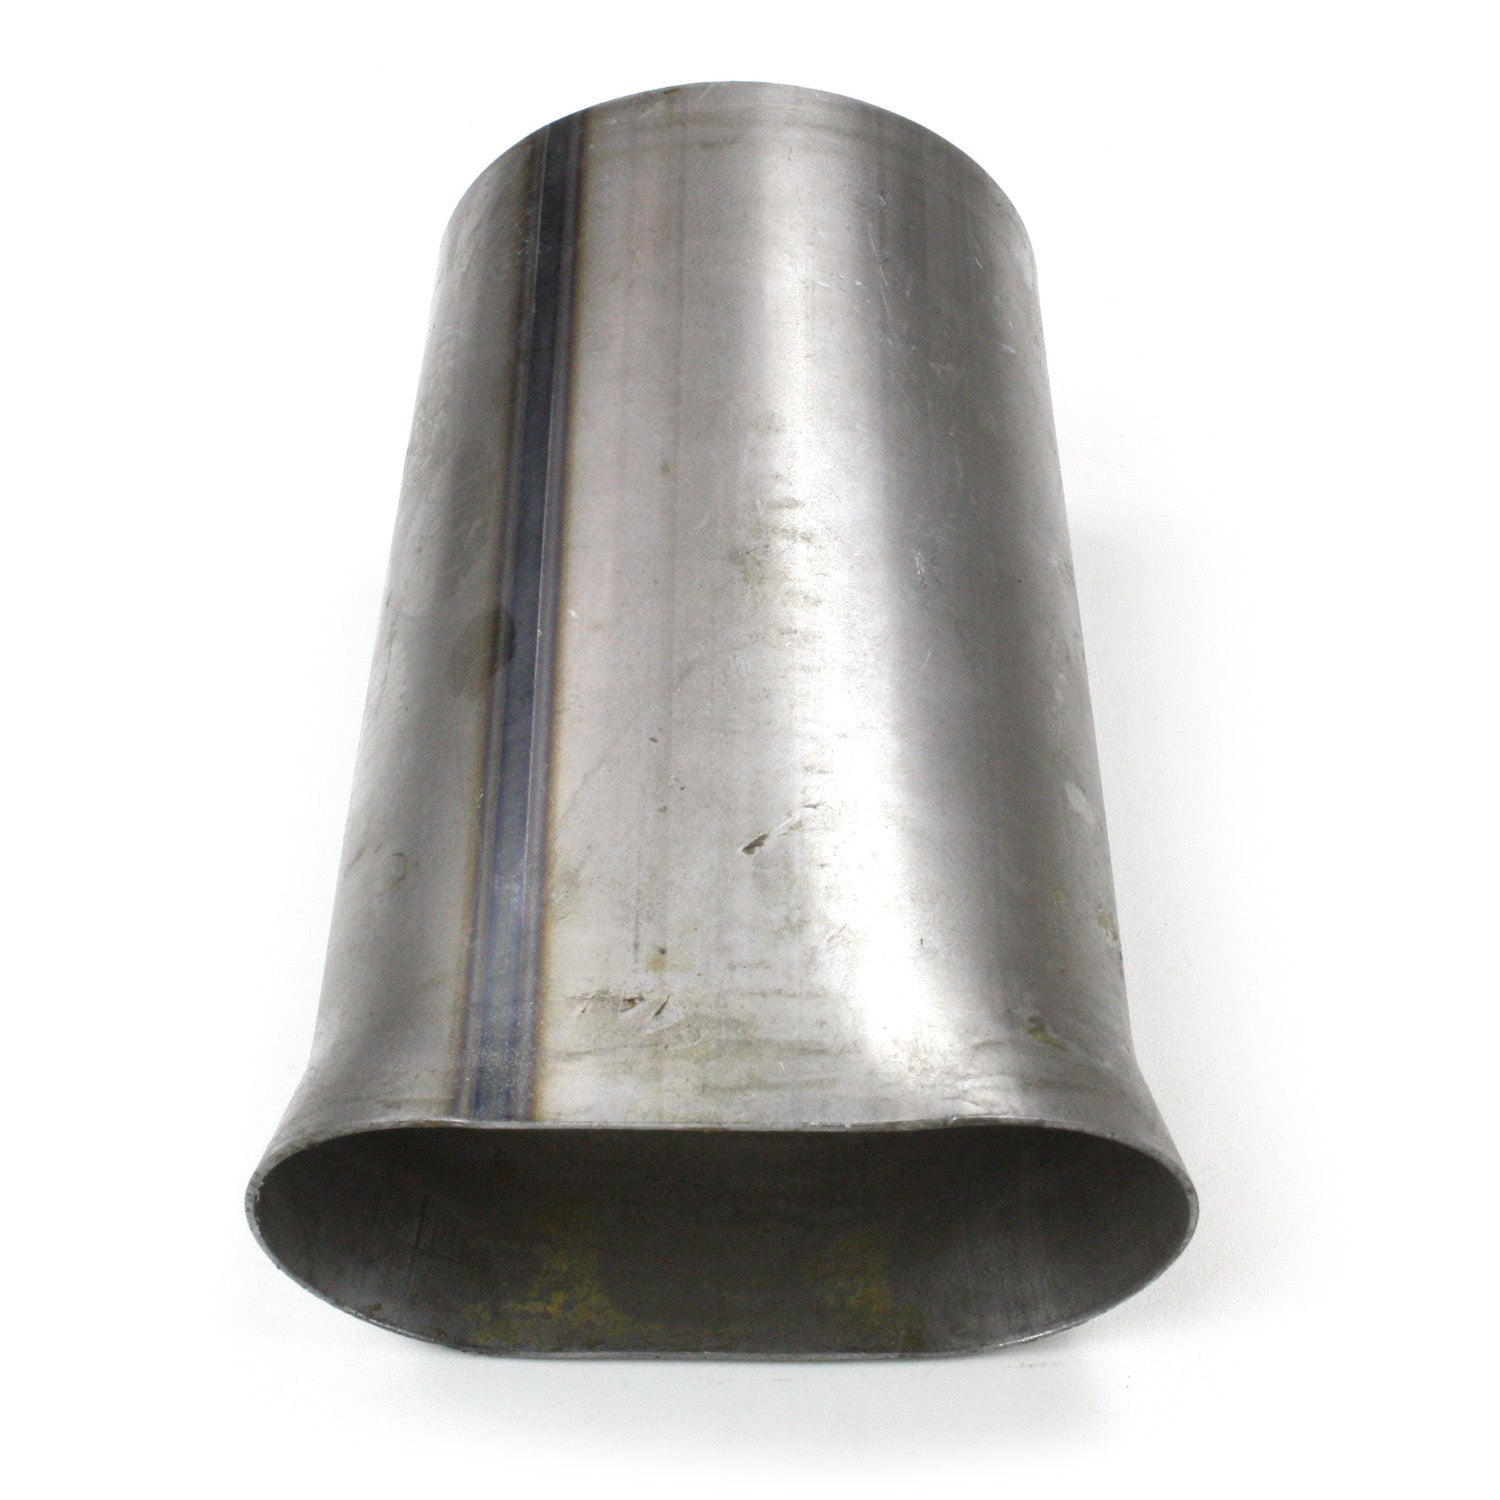 "Patriot Exhaust H7666 2-1 Formed Collector 2 1/2""x3 1/2""x6 1/2"""